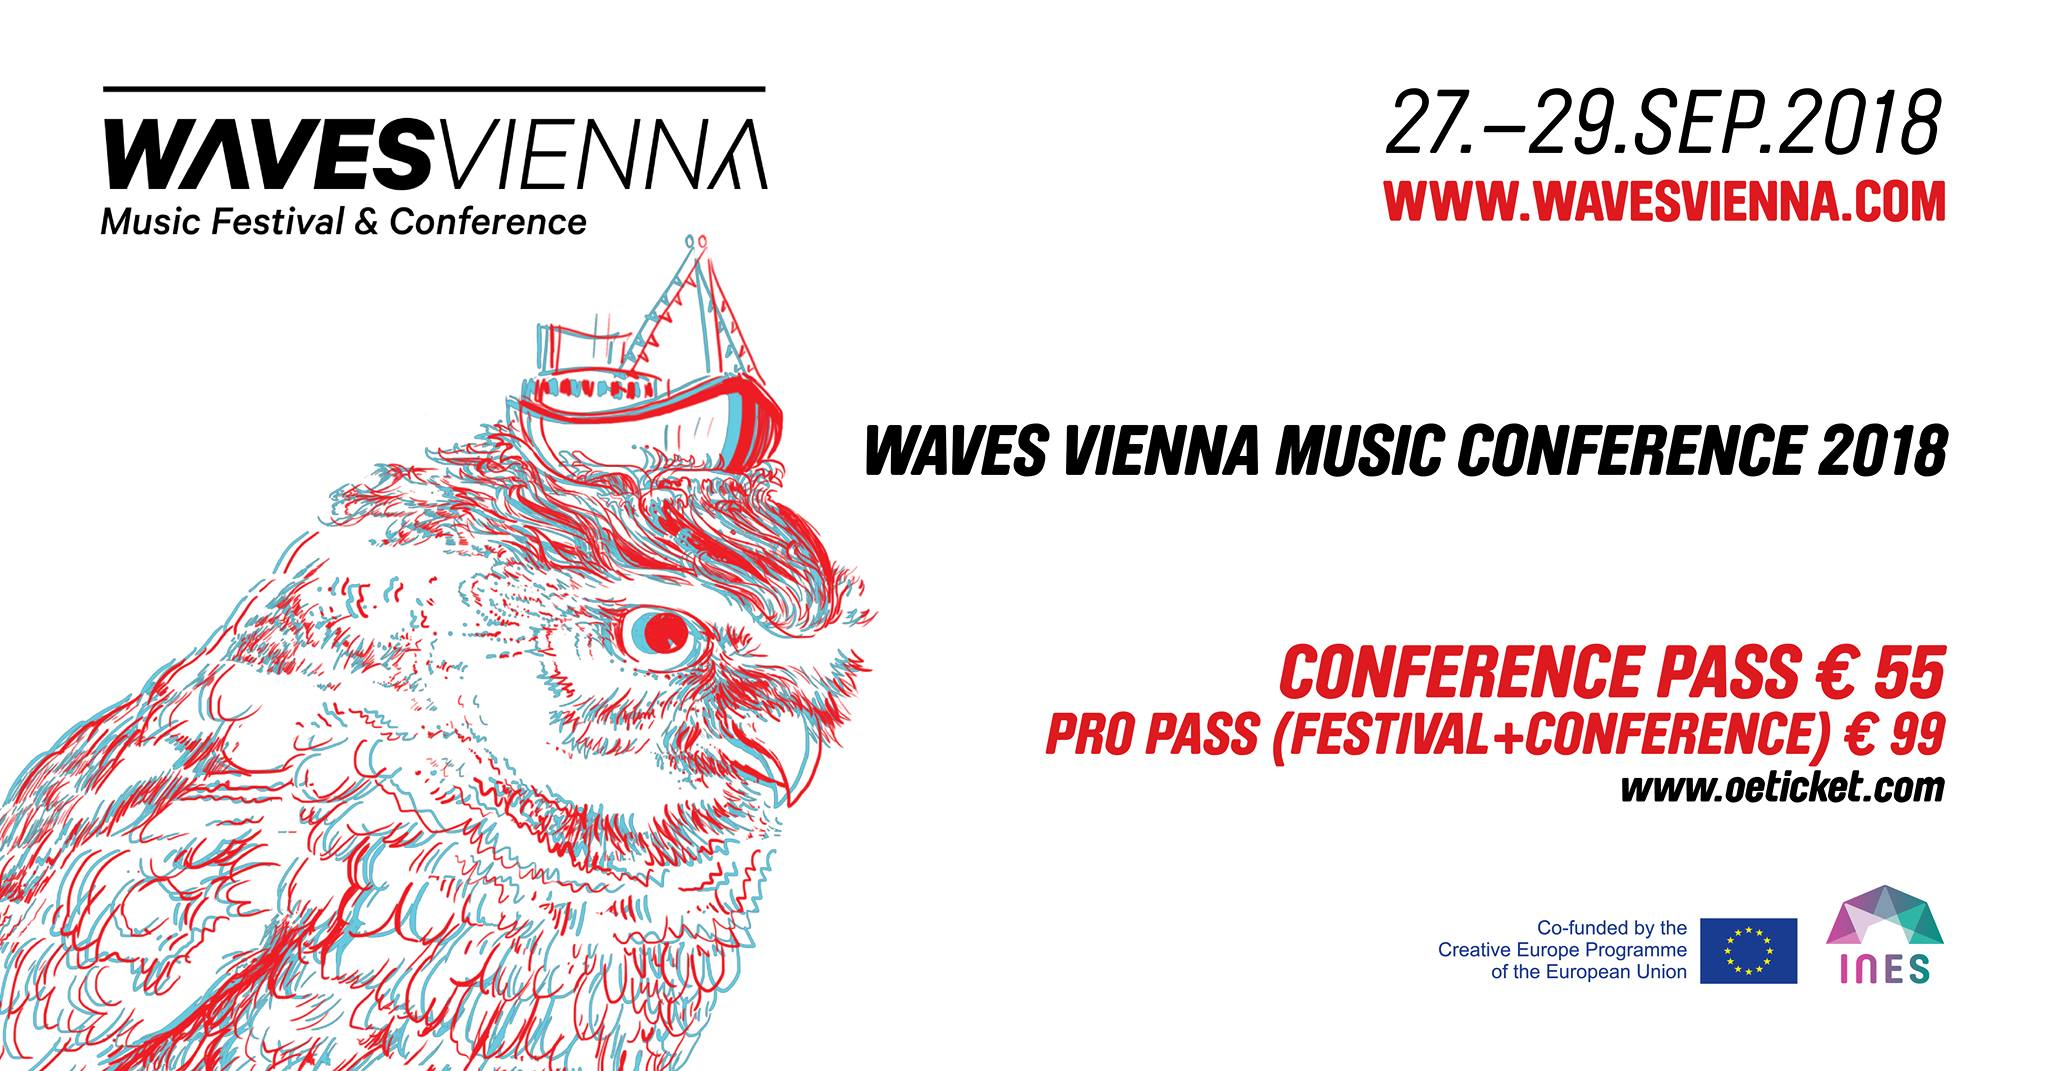 Waves Vienna Conference 2018